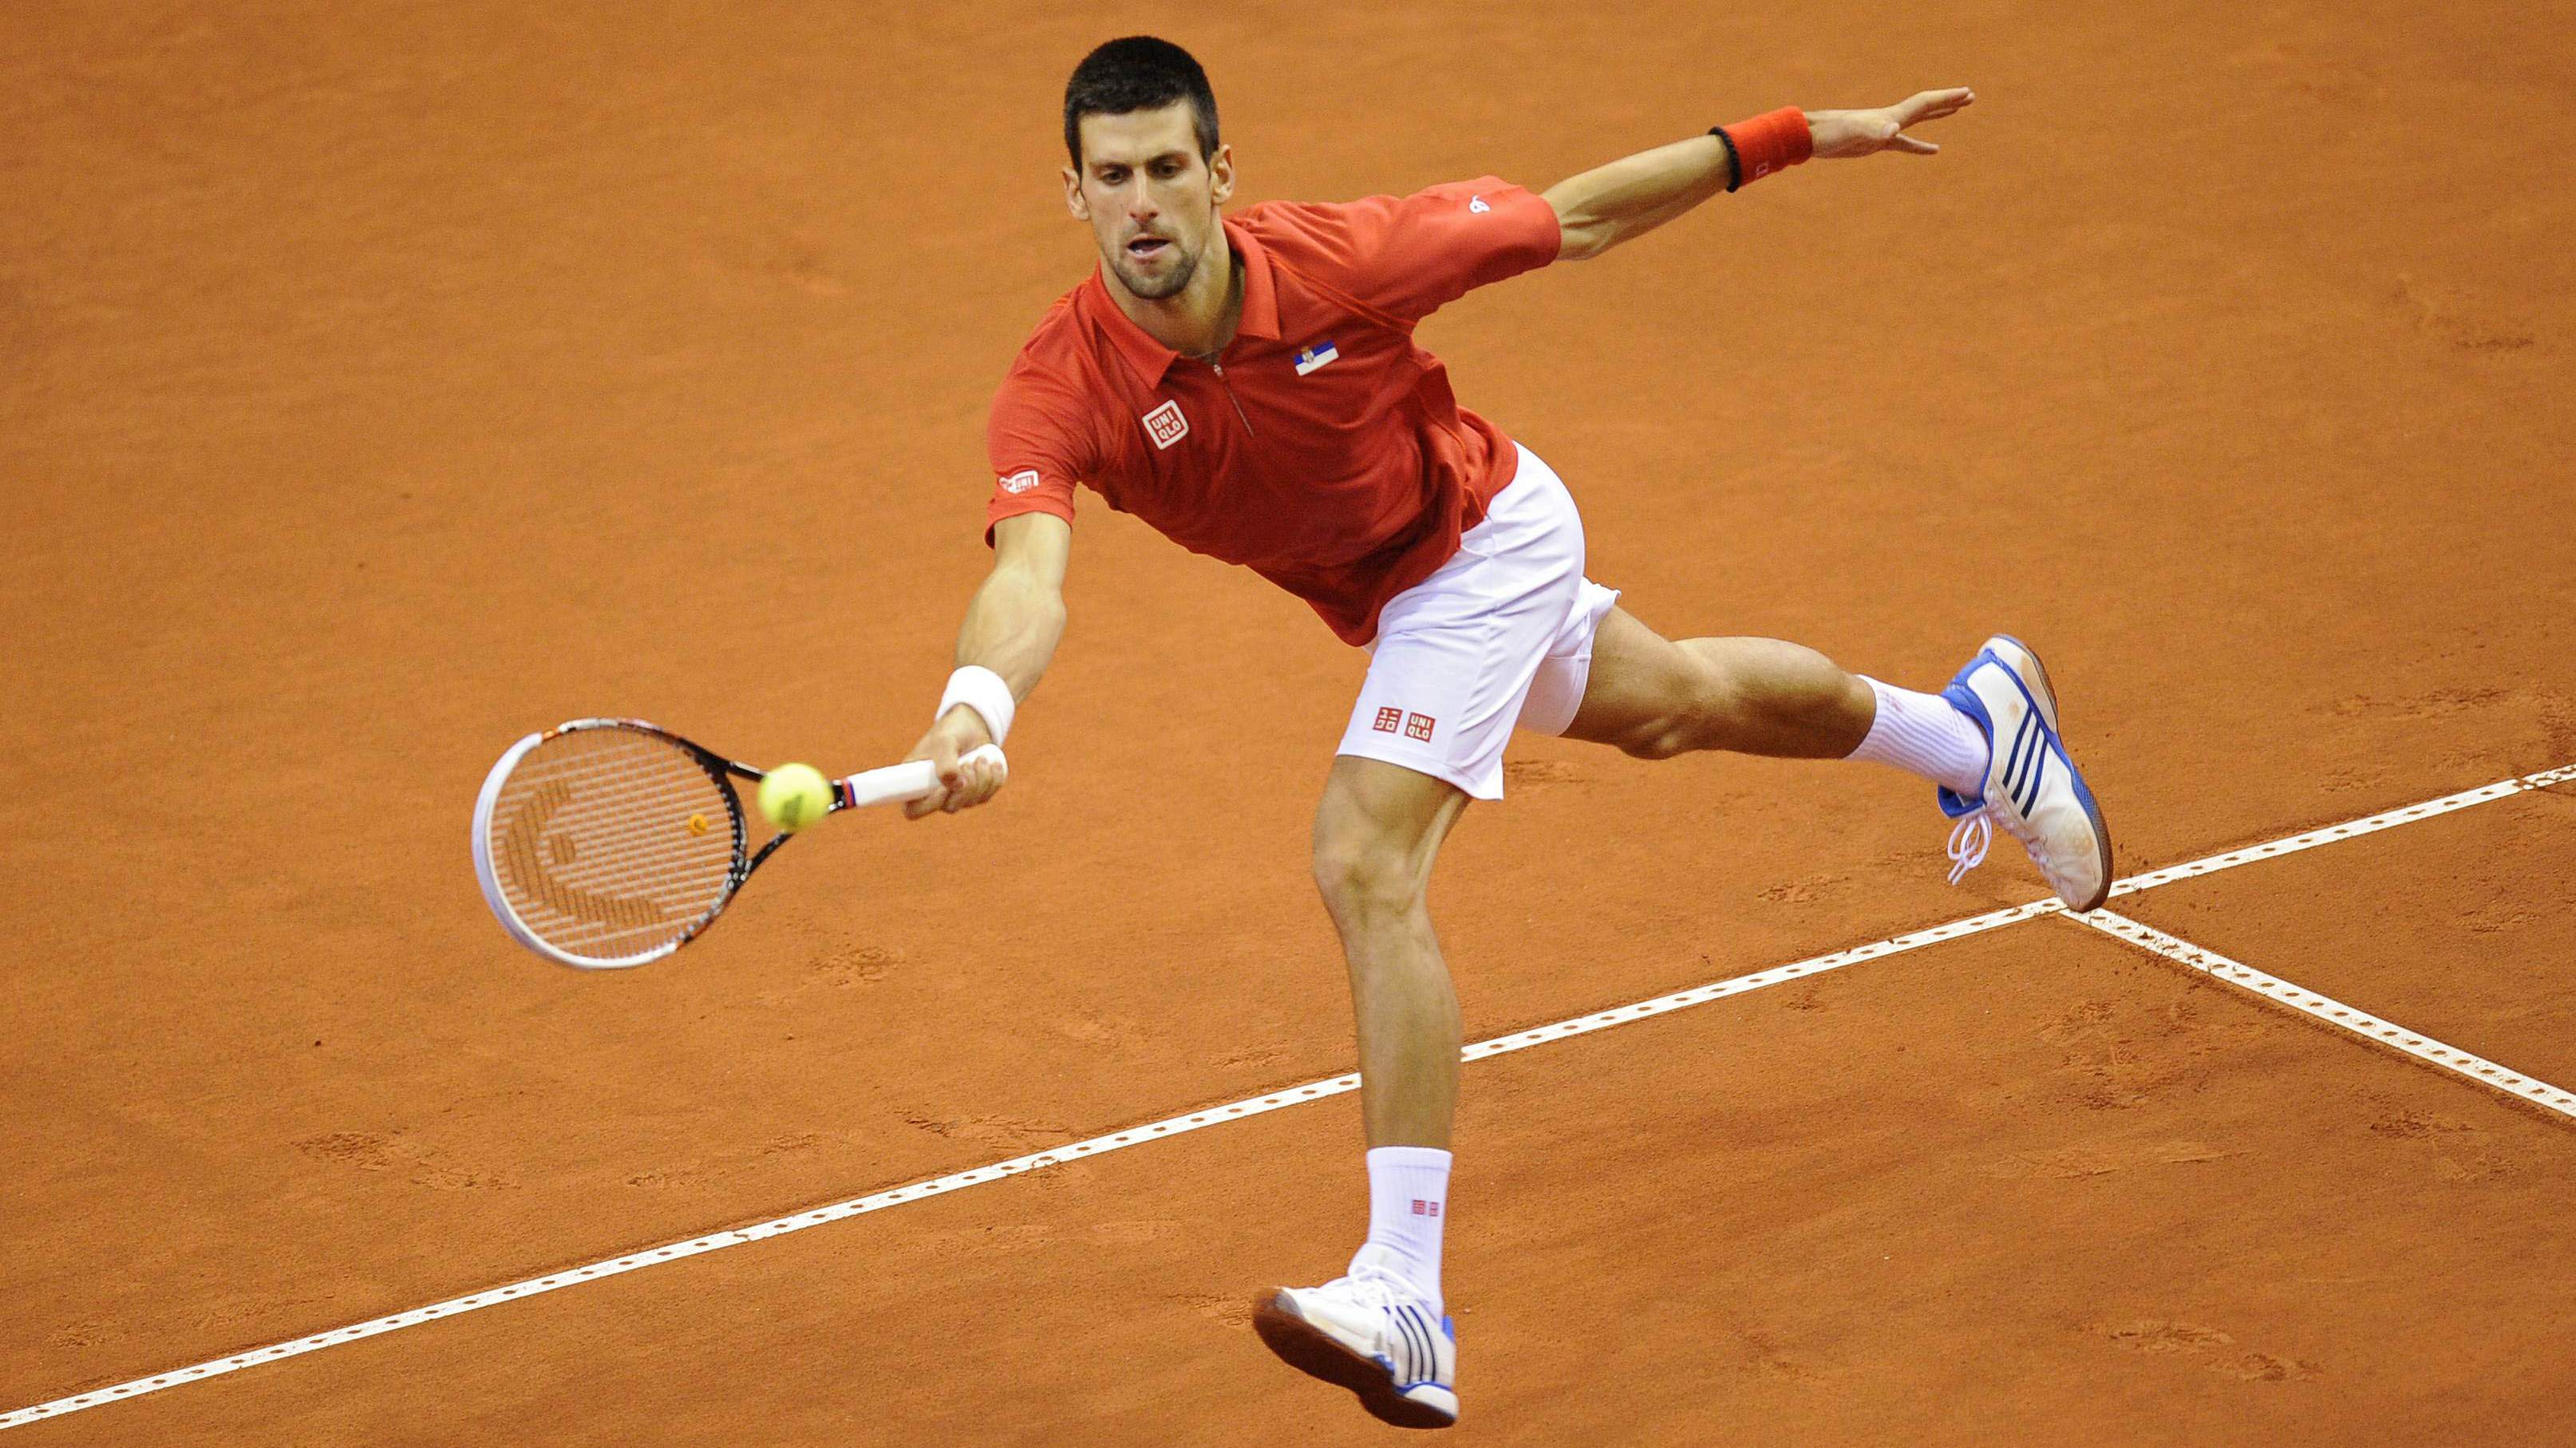 Djokovic routs Rochus, rips court